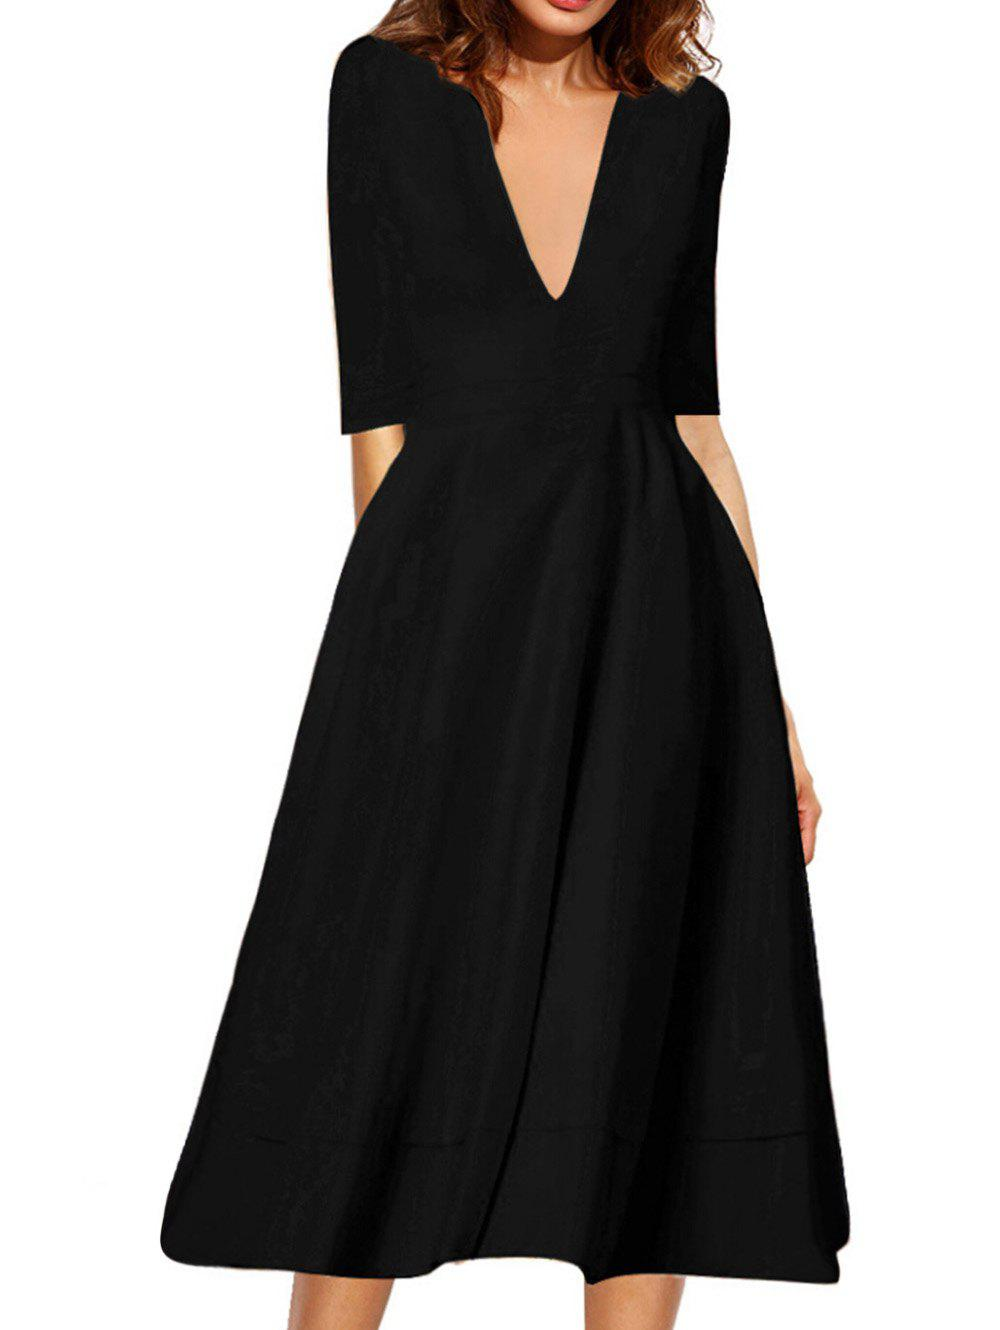 Chic Plunging Neck Flare Midi Vintage Dress